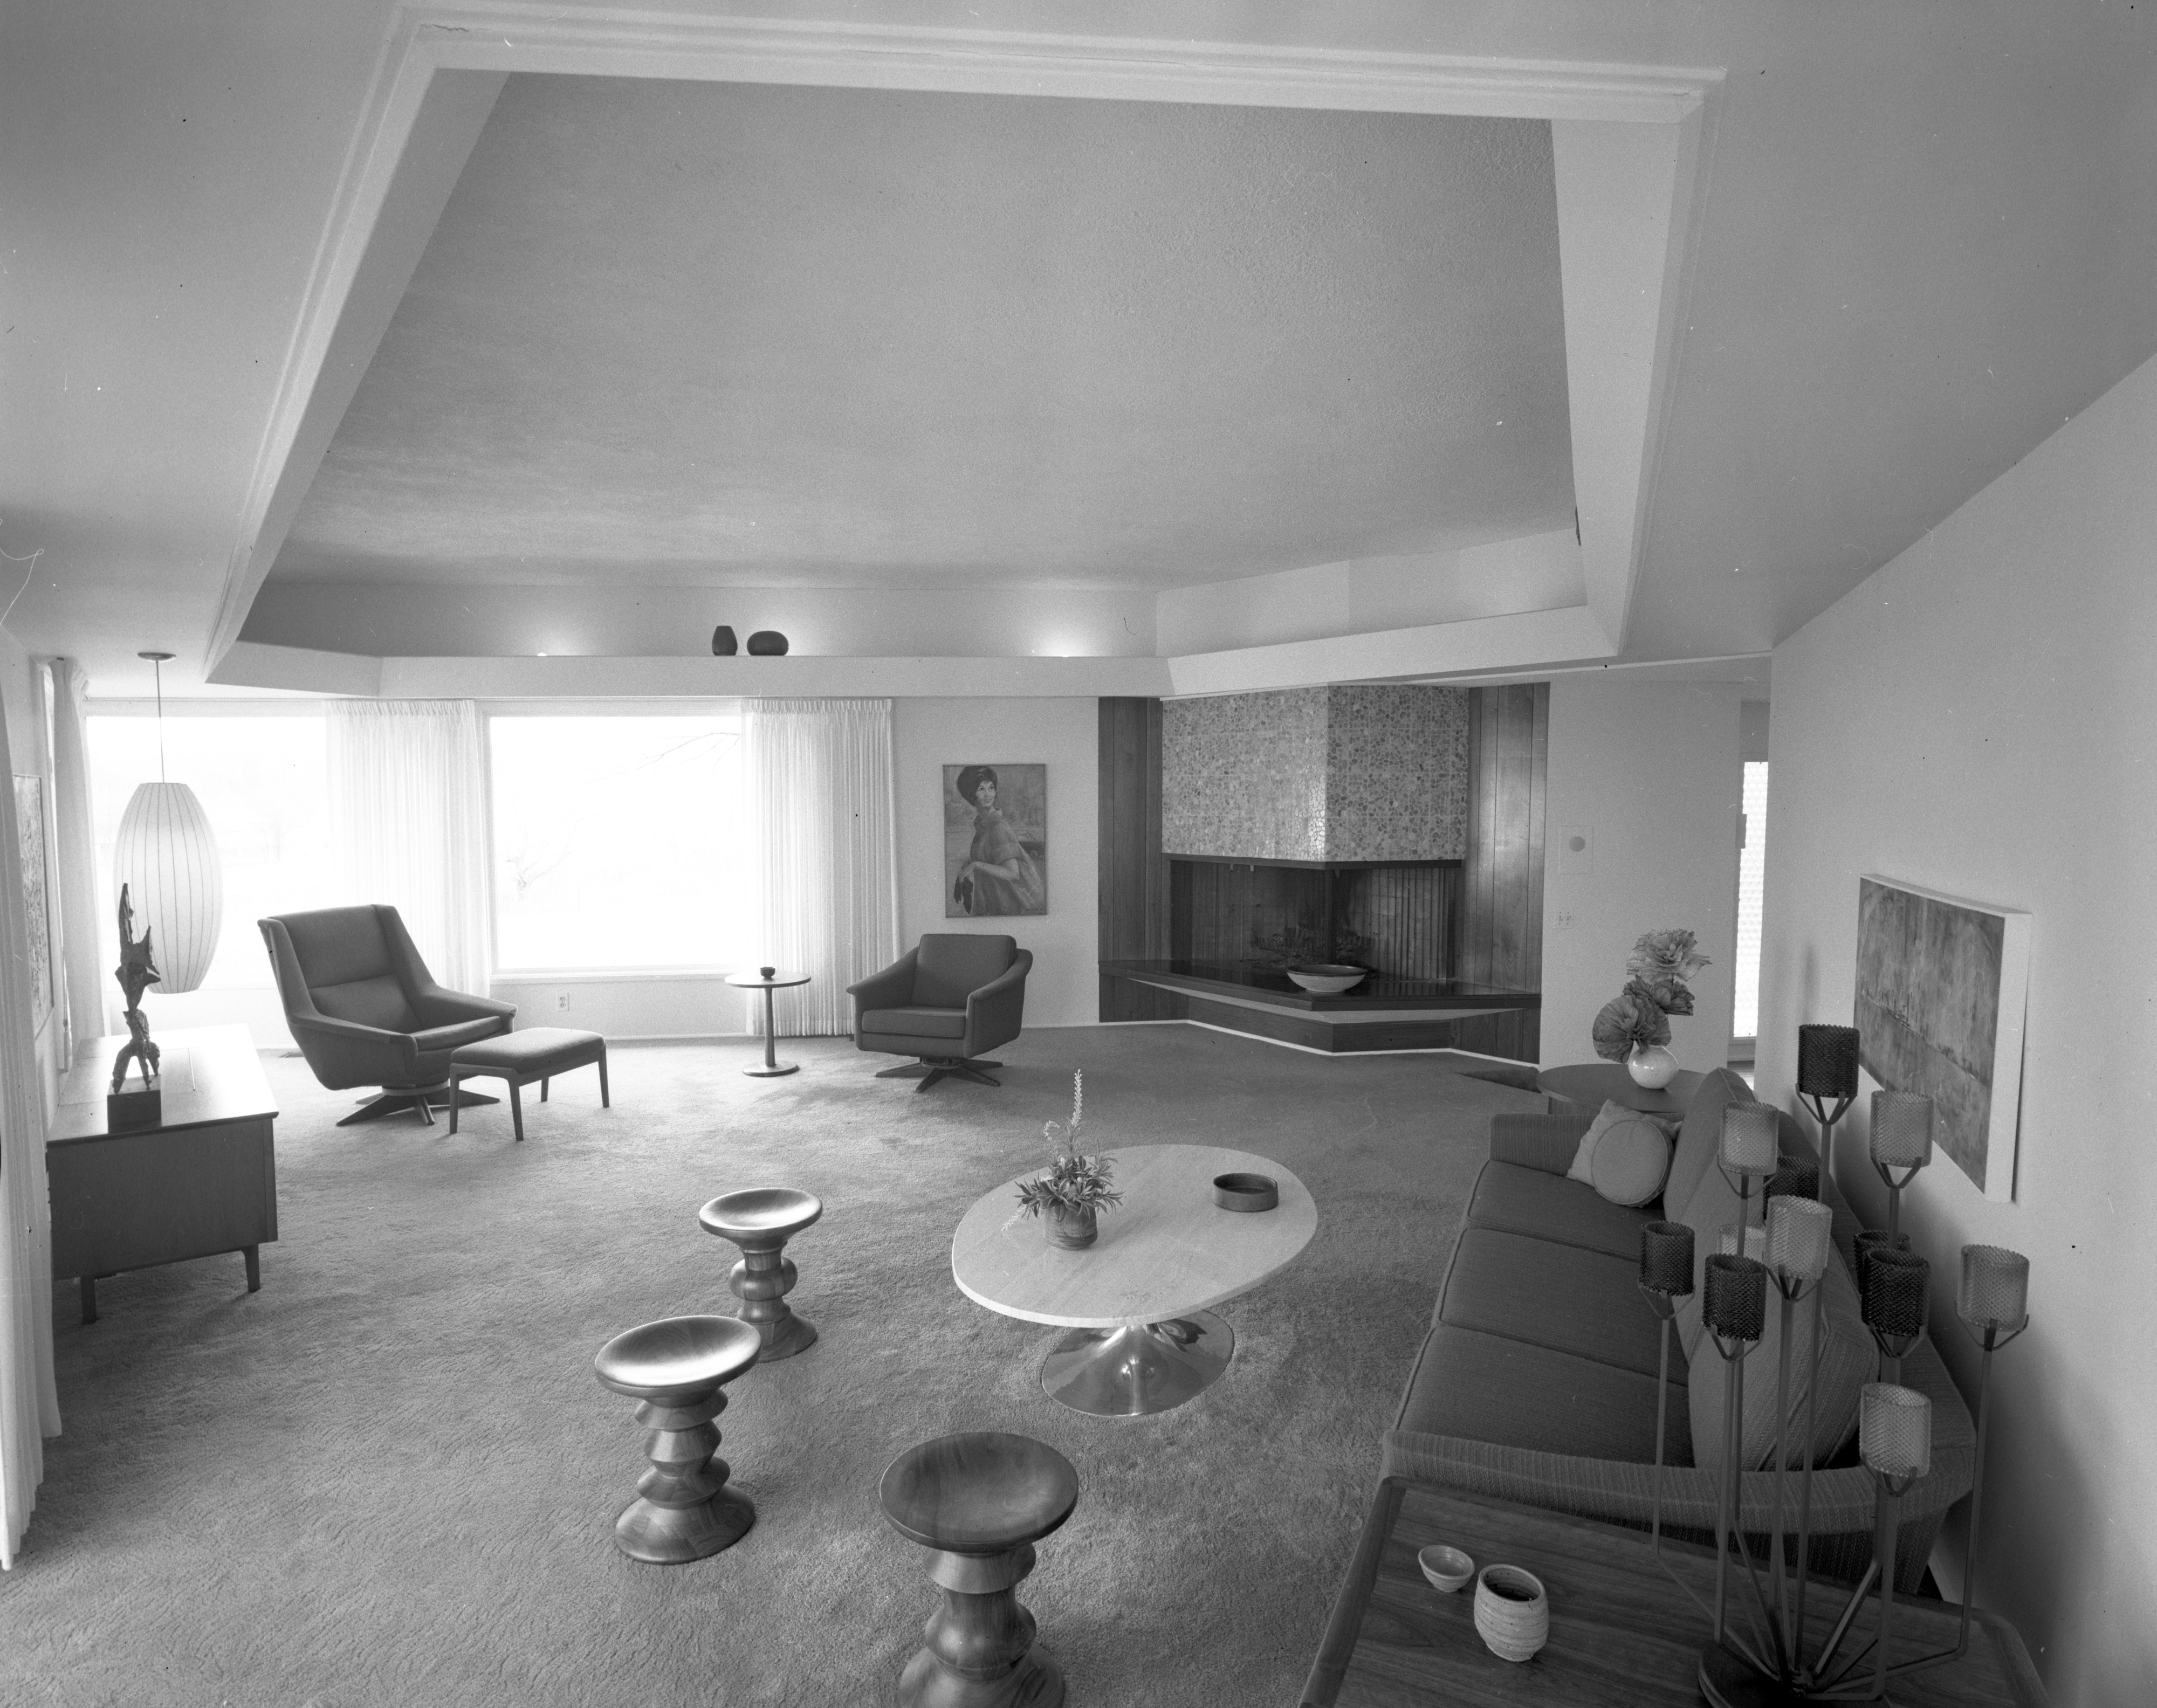 Angled Fireplace Anchors Living Room at Merlyn C. Keller Residence, April 1967 image